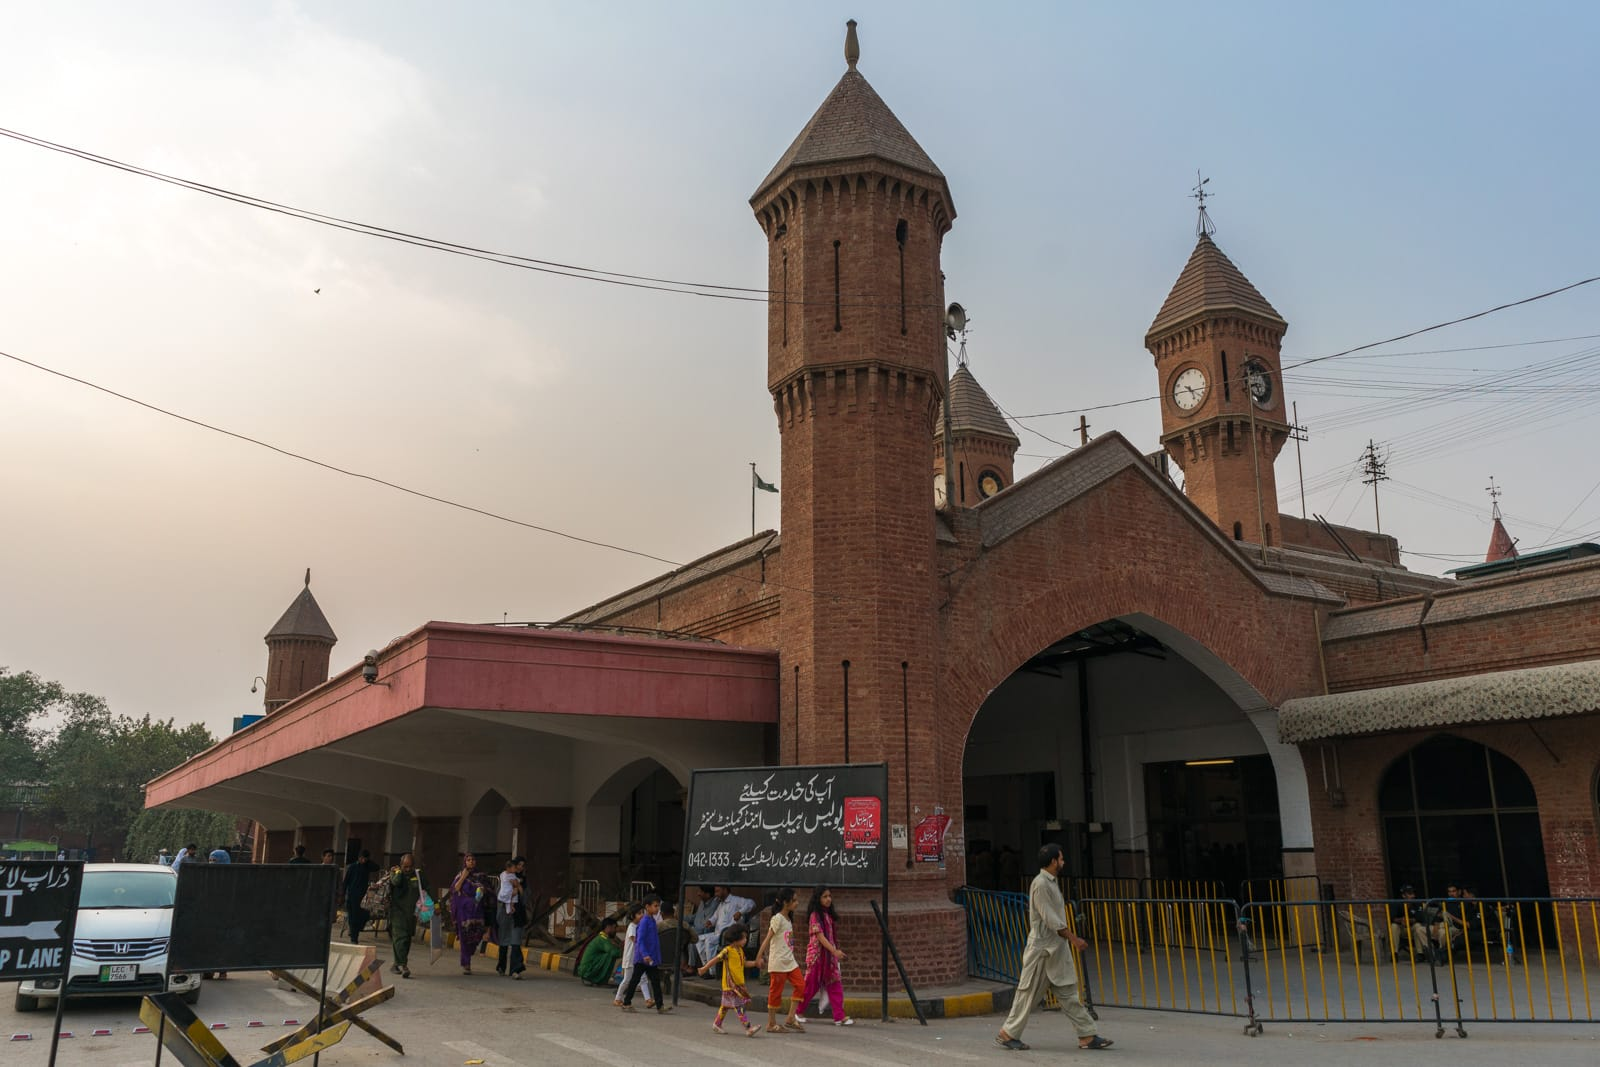 Train station in Lahore, Pakistan